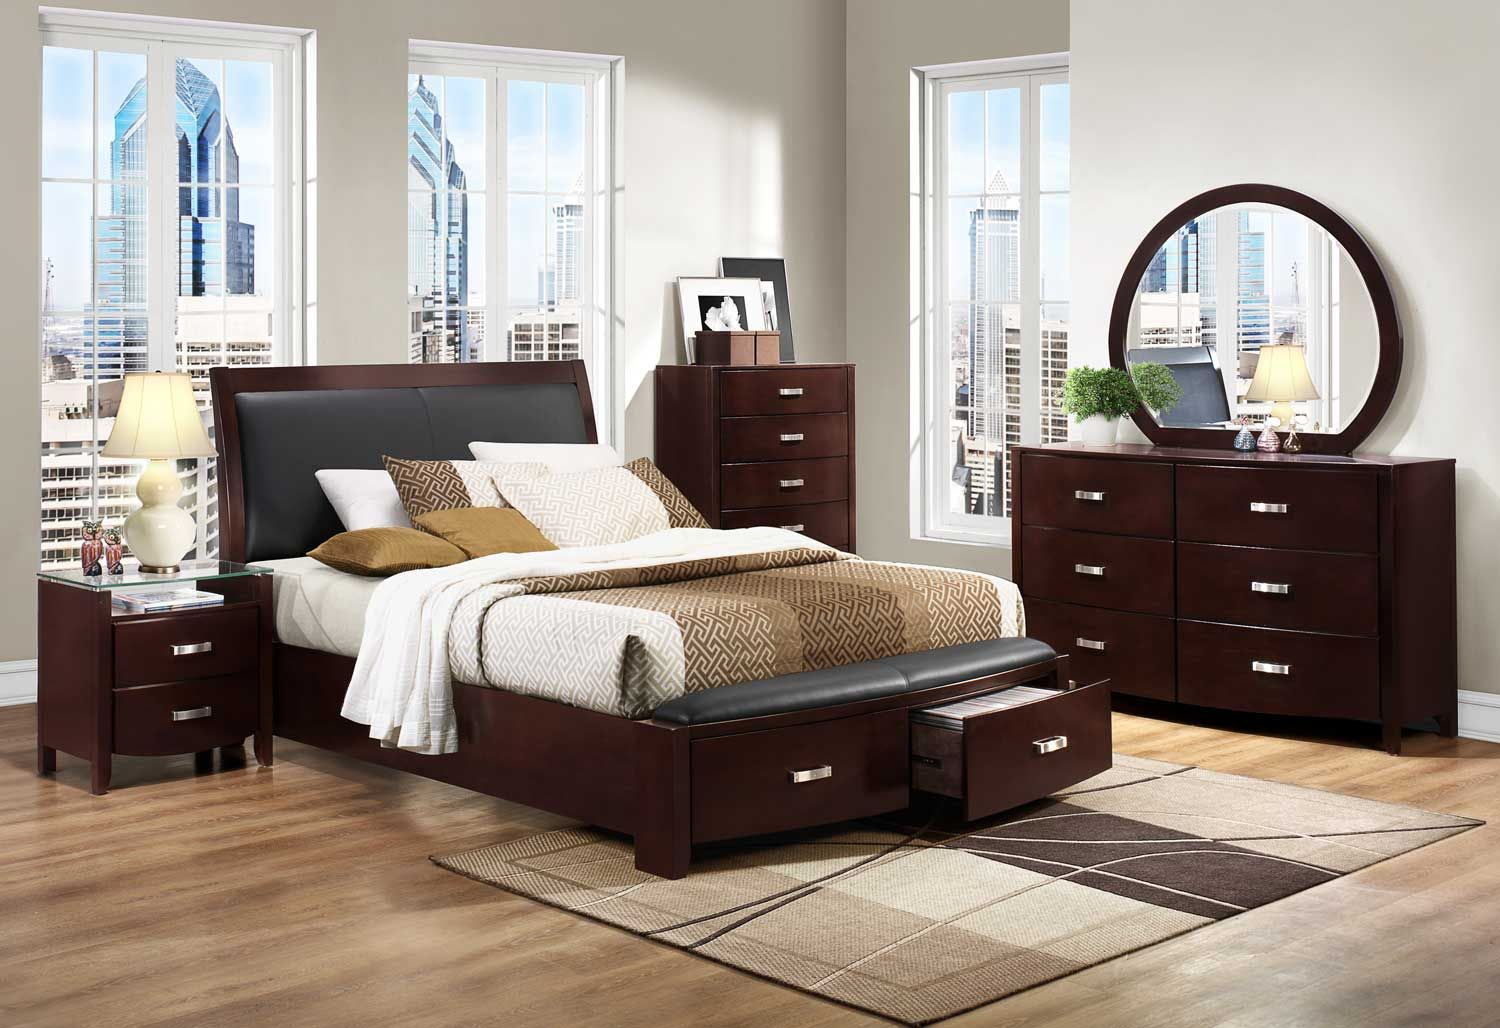 Homelegance Lyric Platform Bedroom Set Dark Espresso $1 931 00